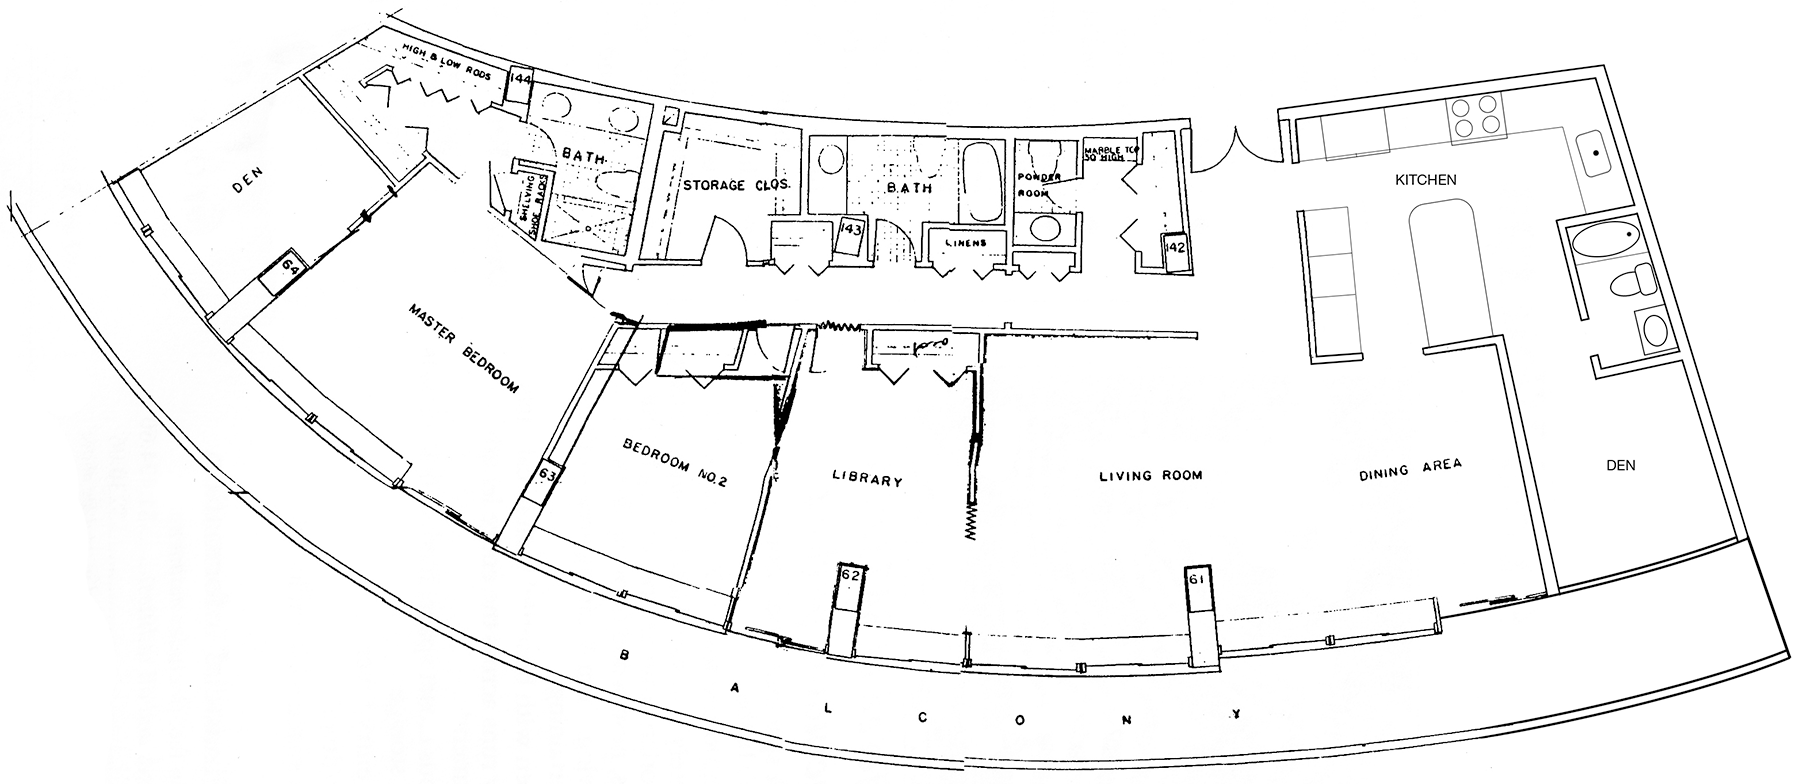 14_212-S Watergate South Floor Plan.png